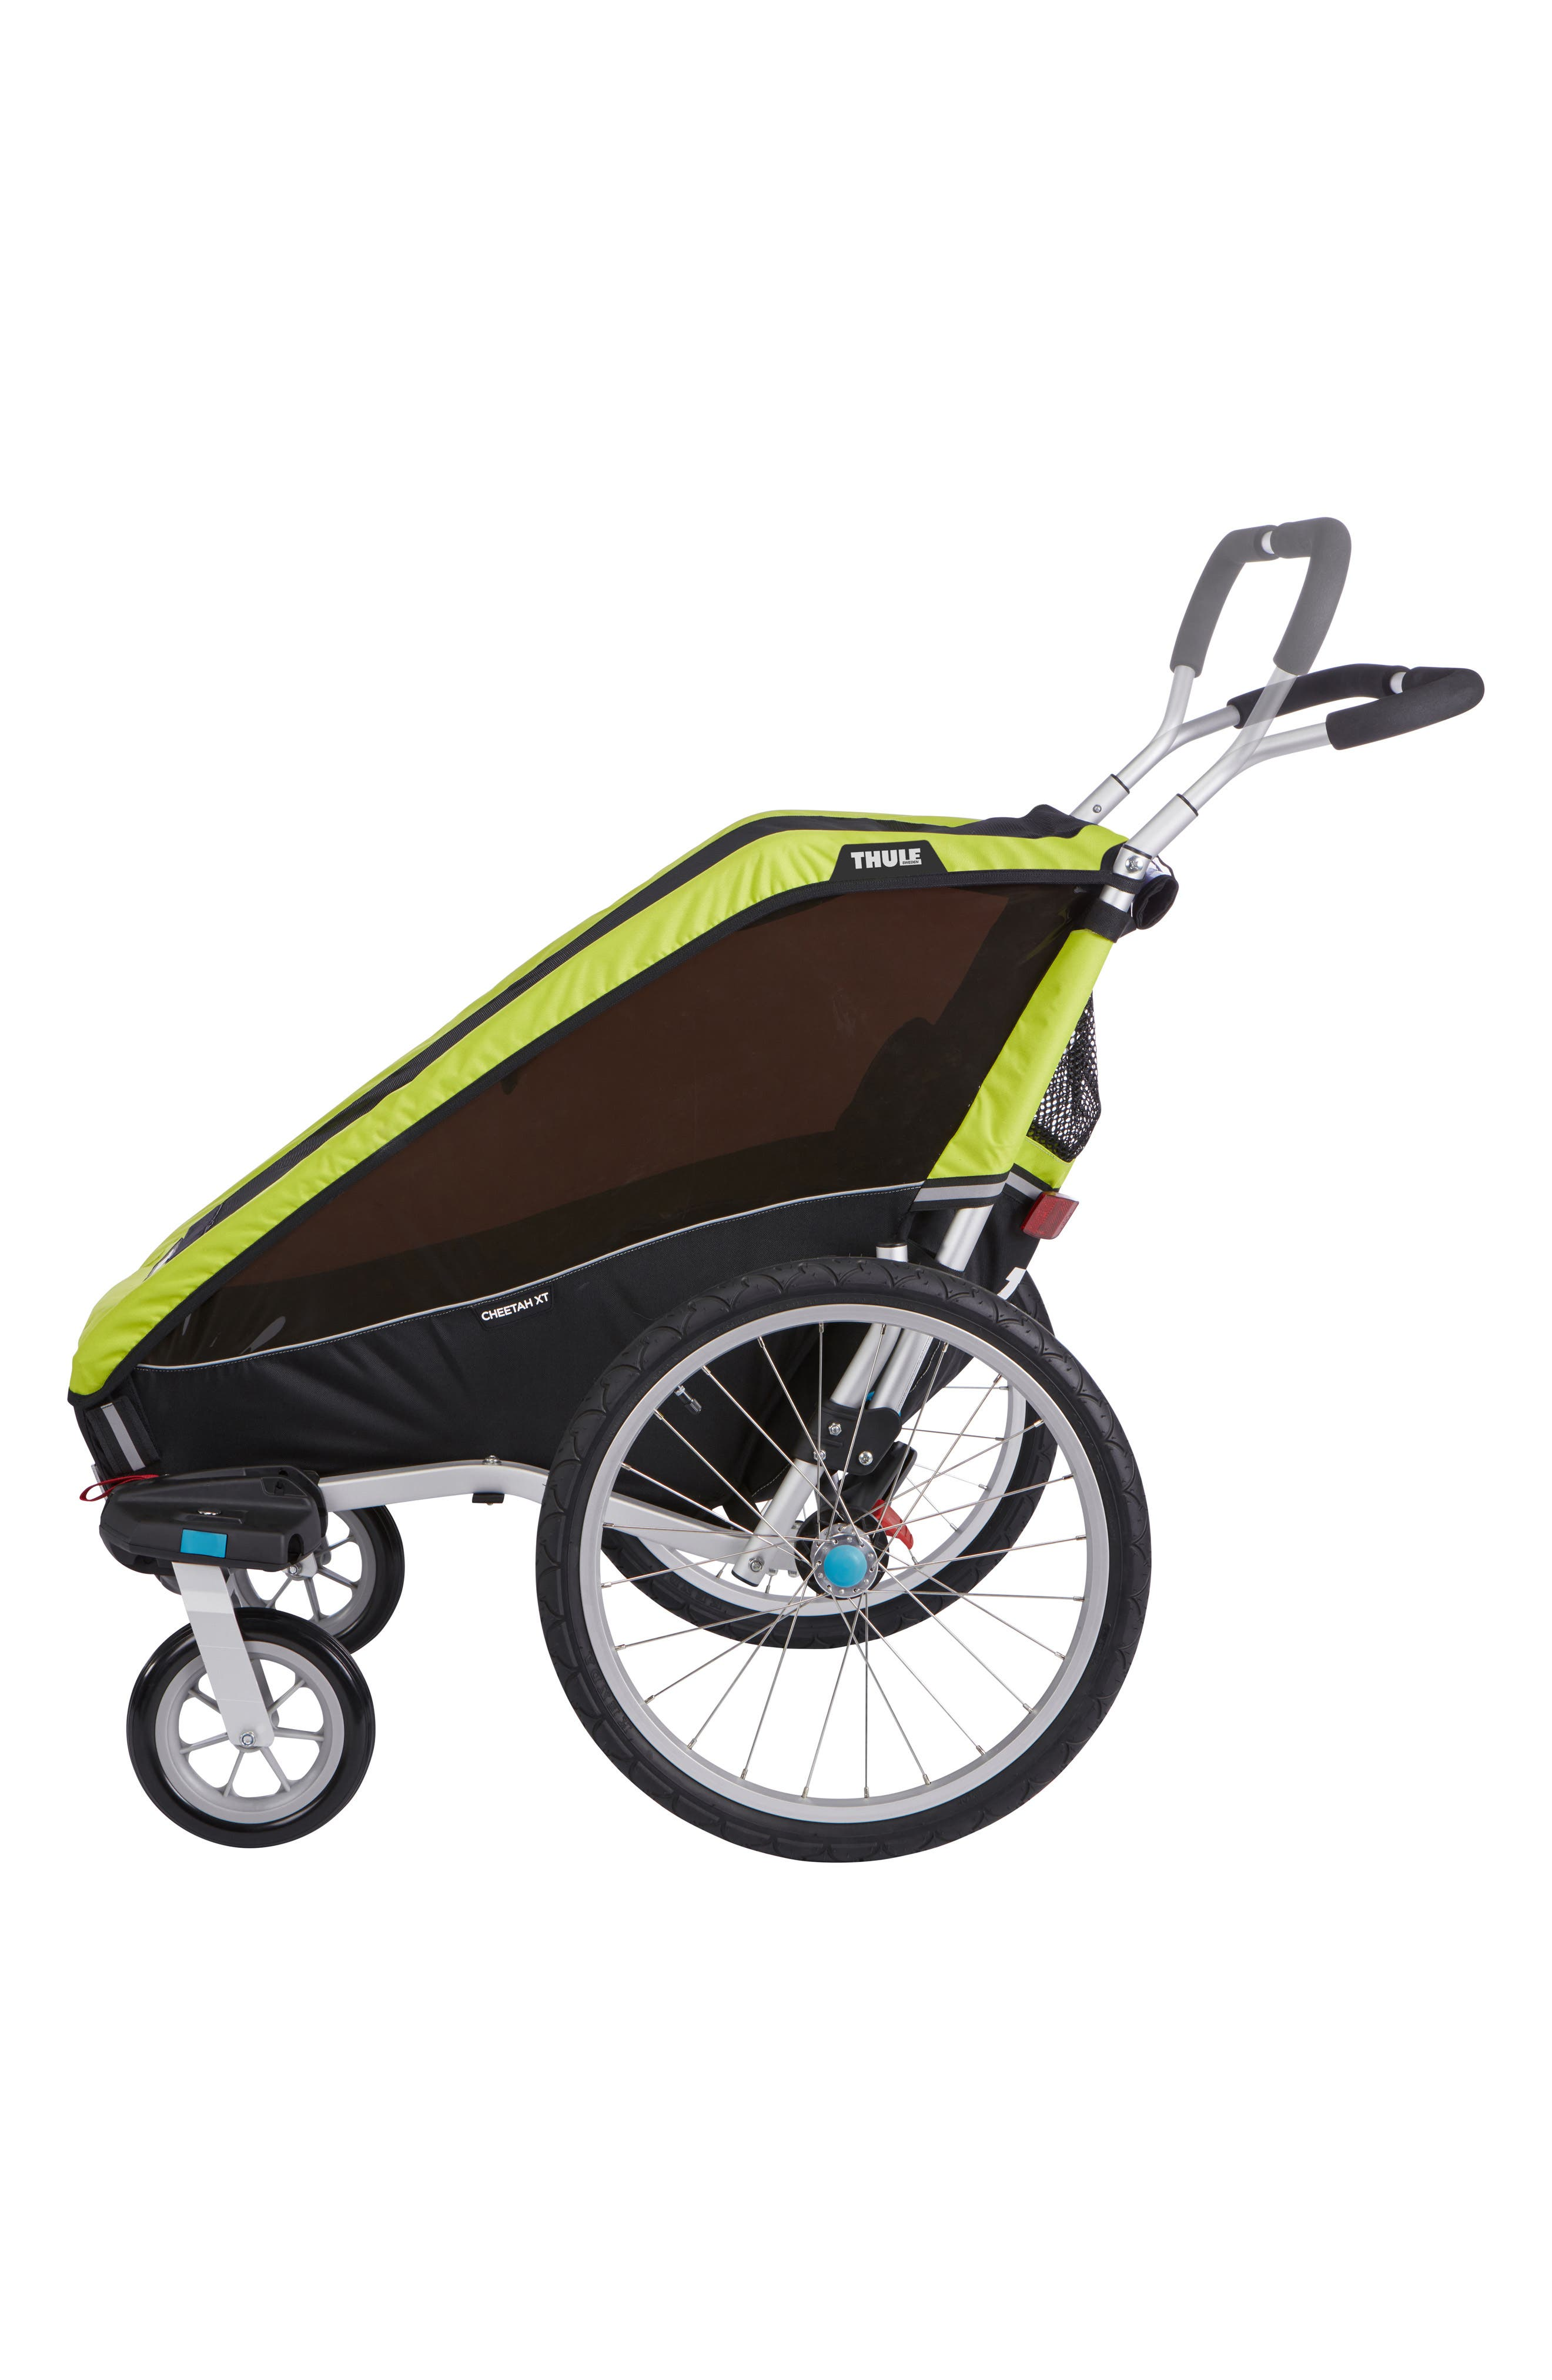 Chariot Cheetah XT 2 Multisport Cycle Trailer/Stroller,                             Alternate thumbnail 3, color,                             Chartreuse